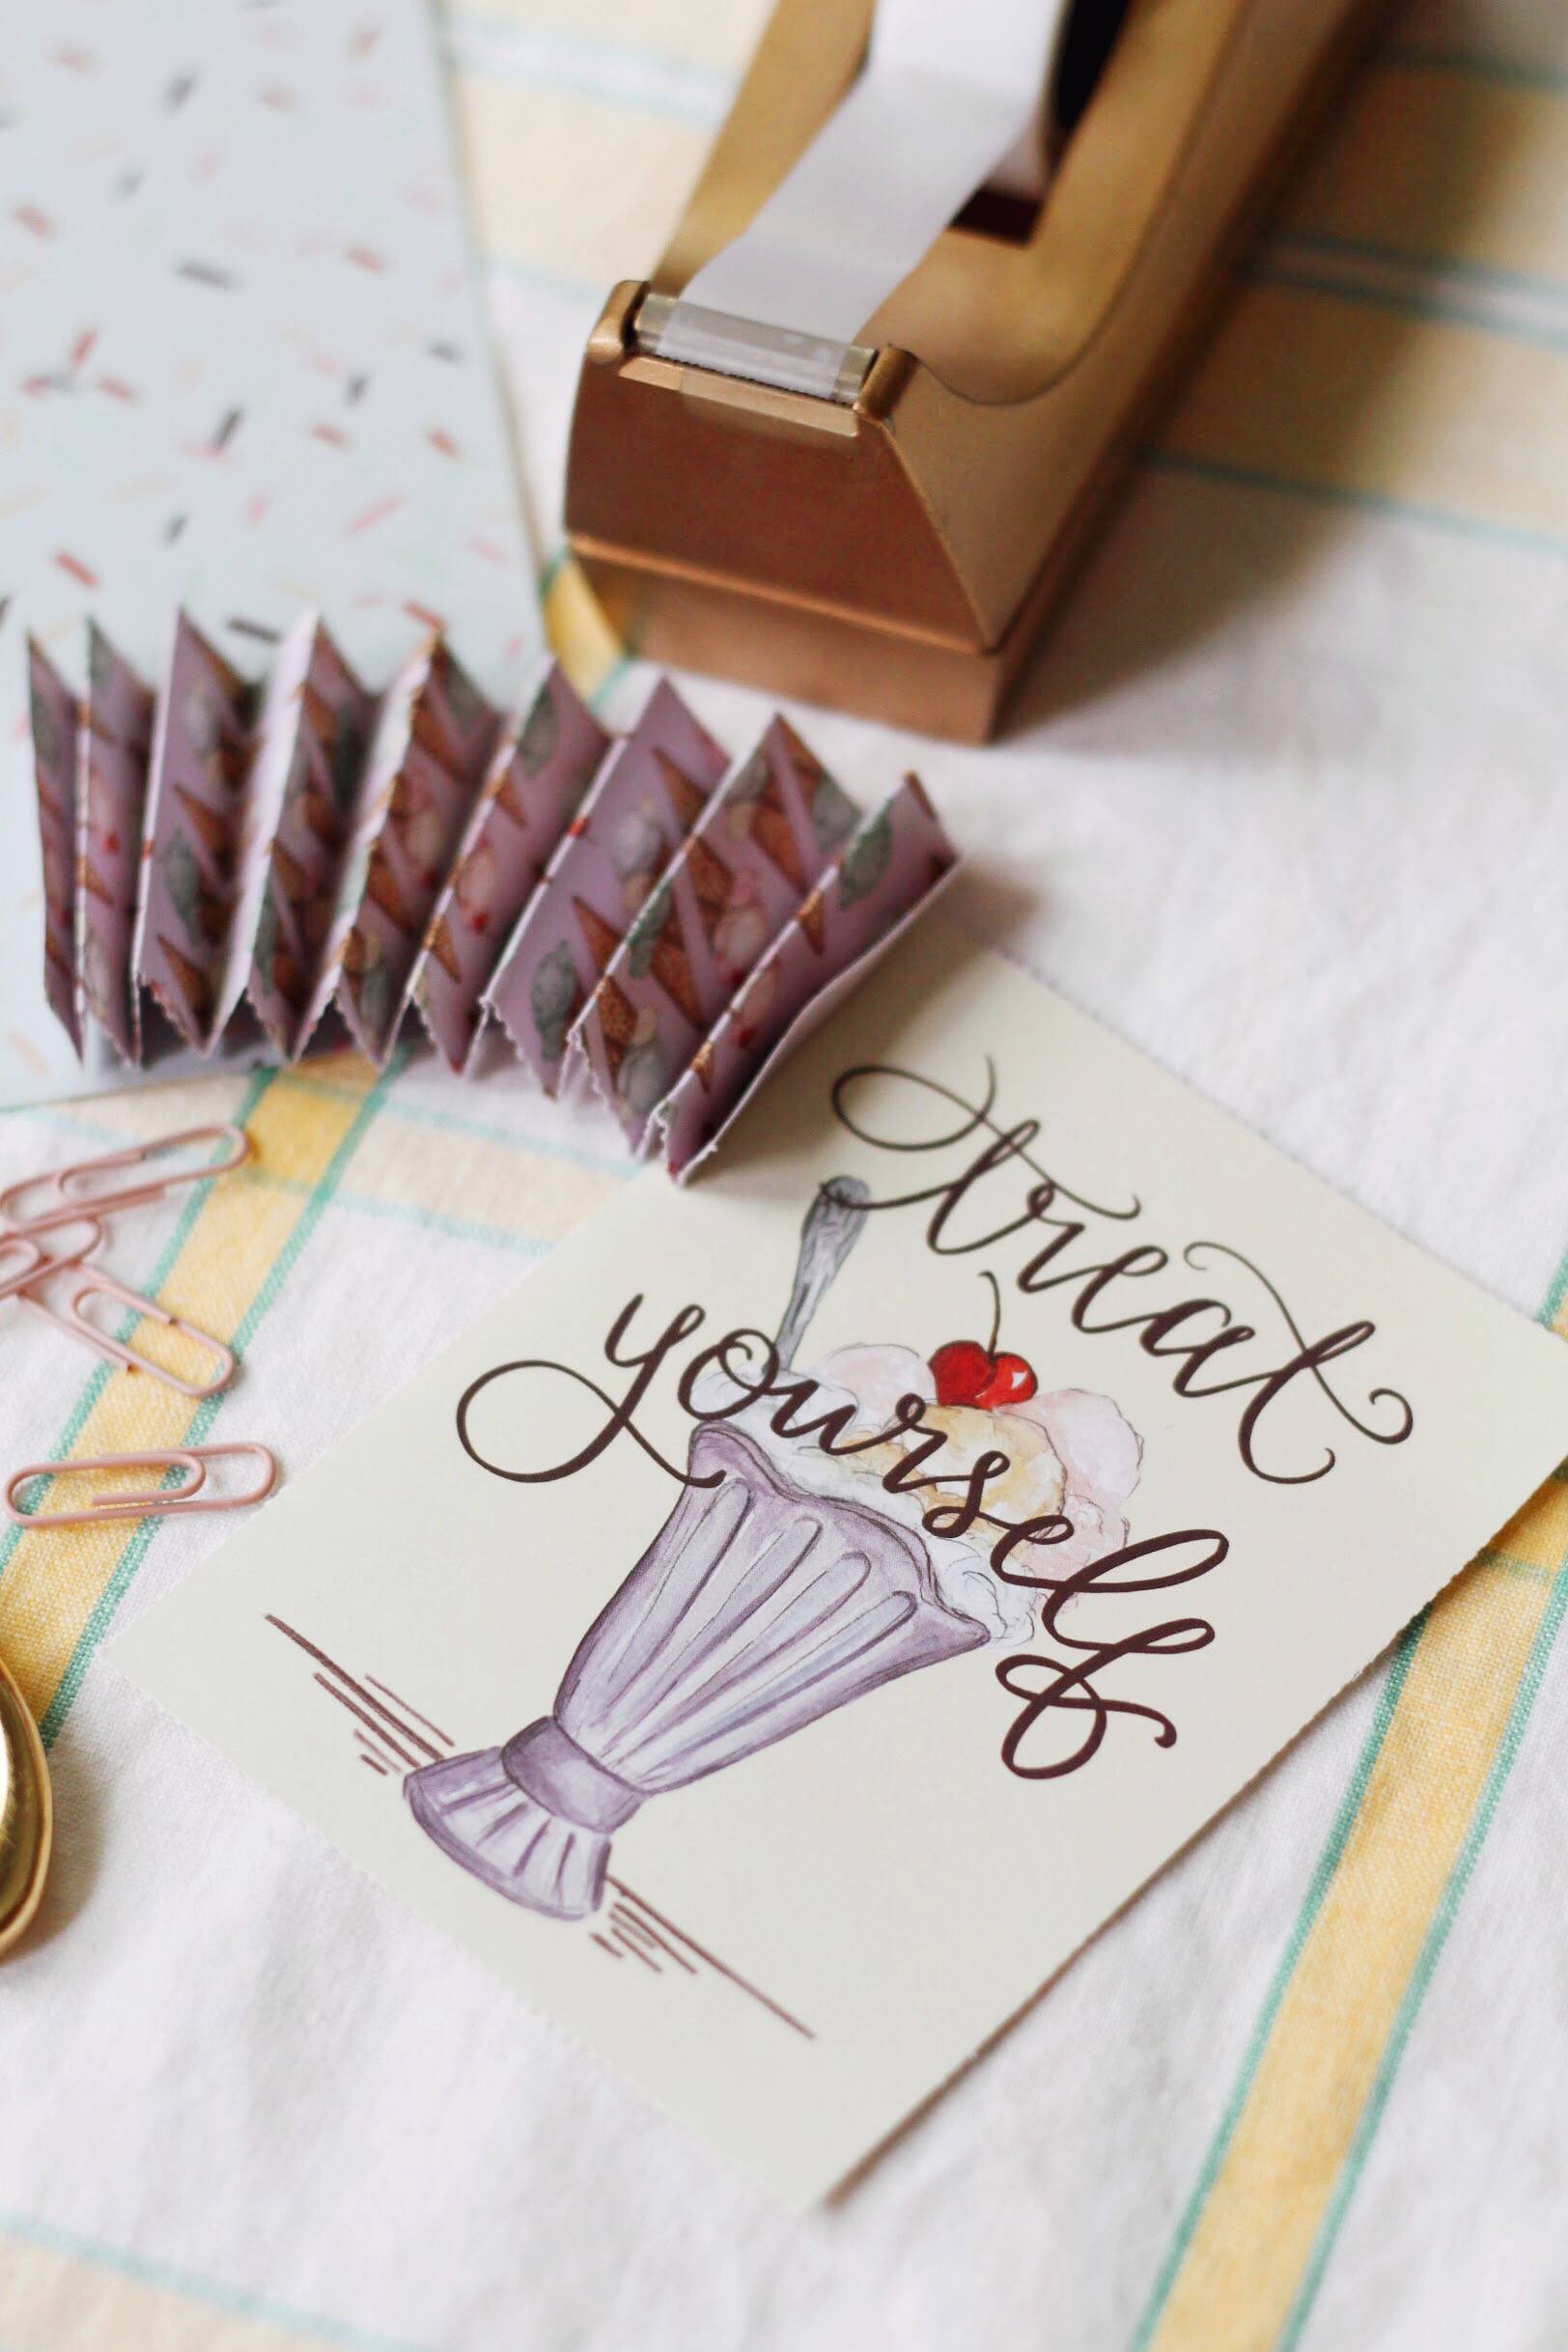 DIY Ice Cream Party Decor- The Art of Paper Crafting Book